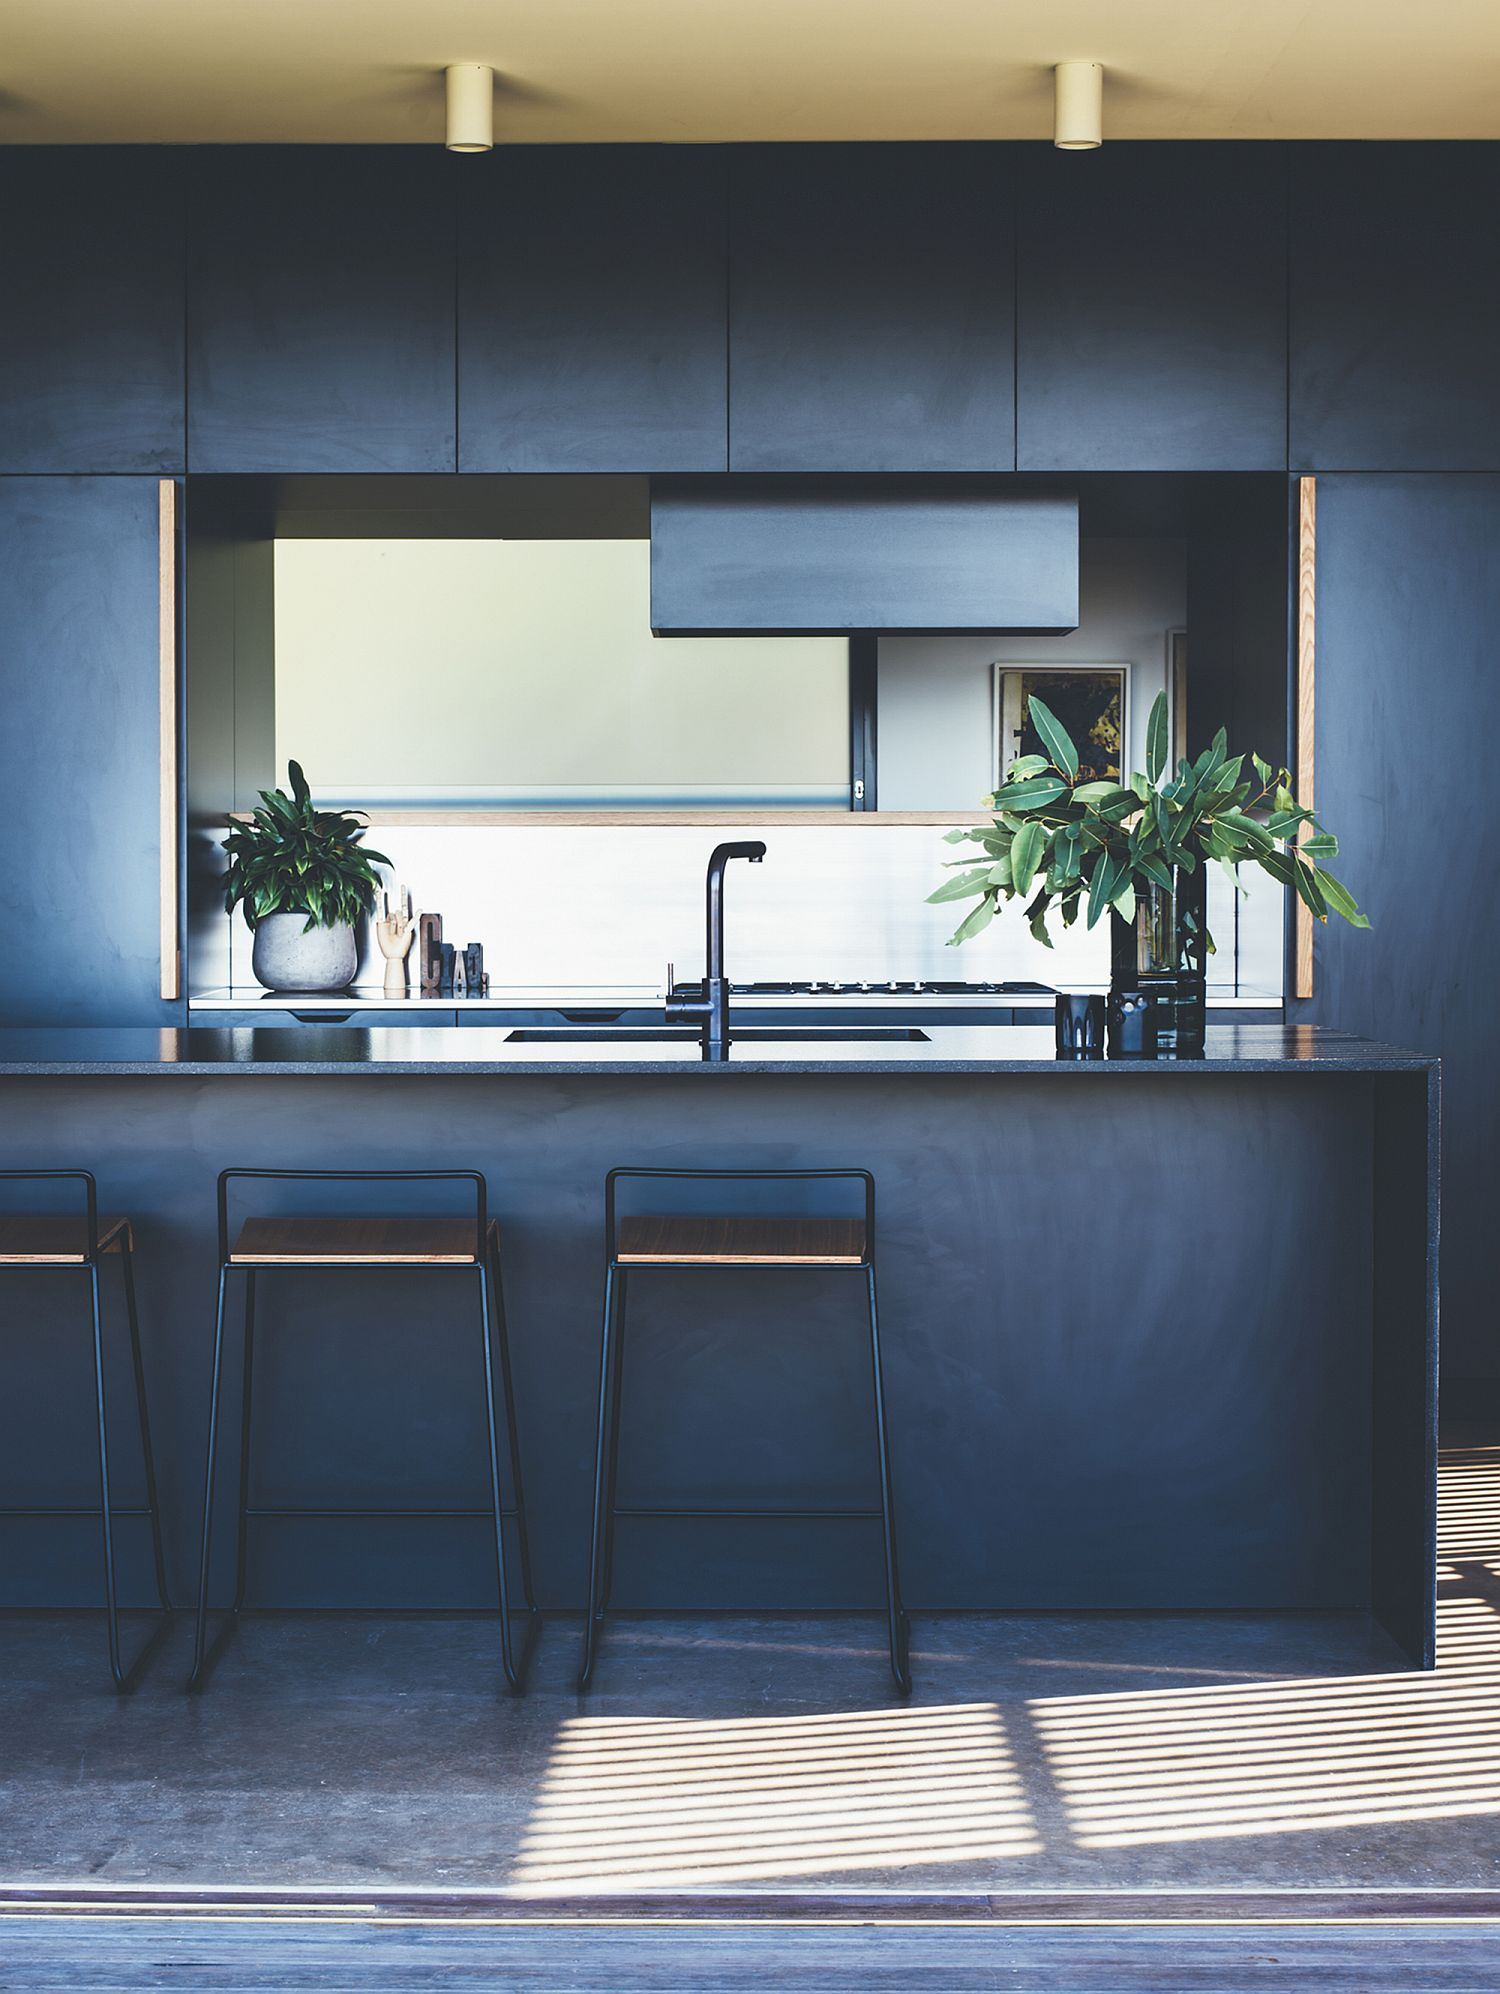 Dark blue gives the kitchen a sophisticated and contemporary appeal